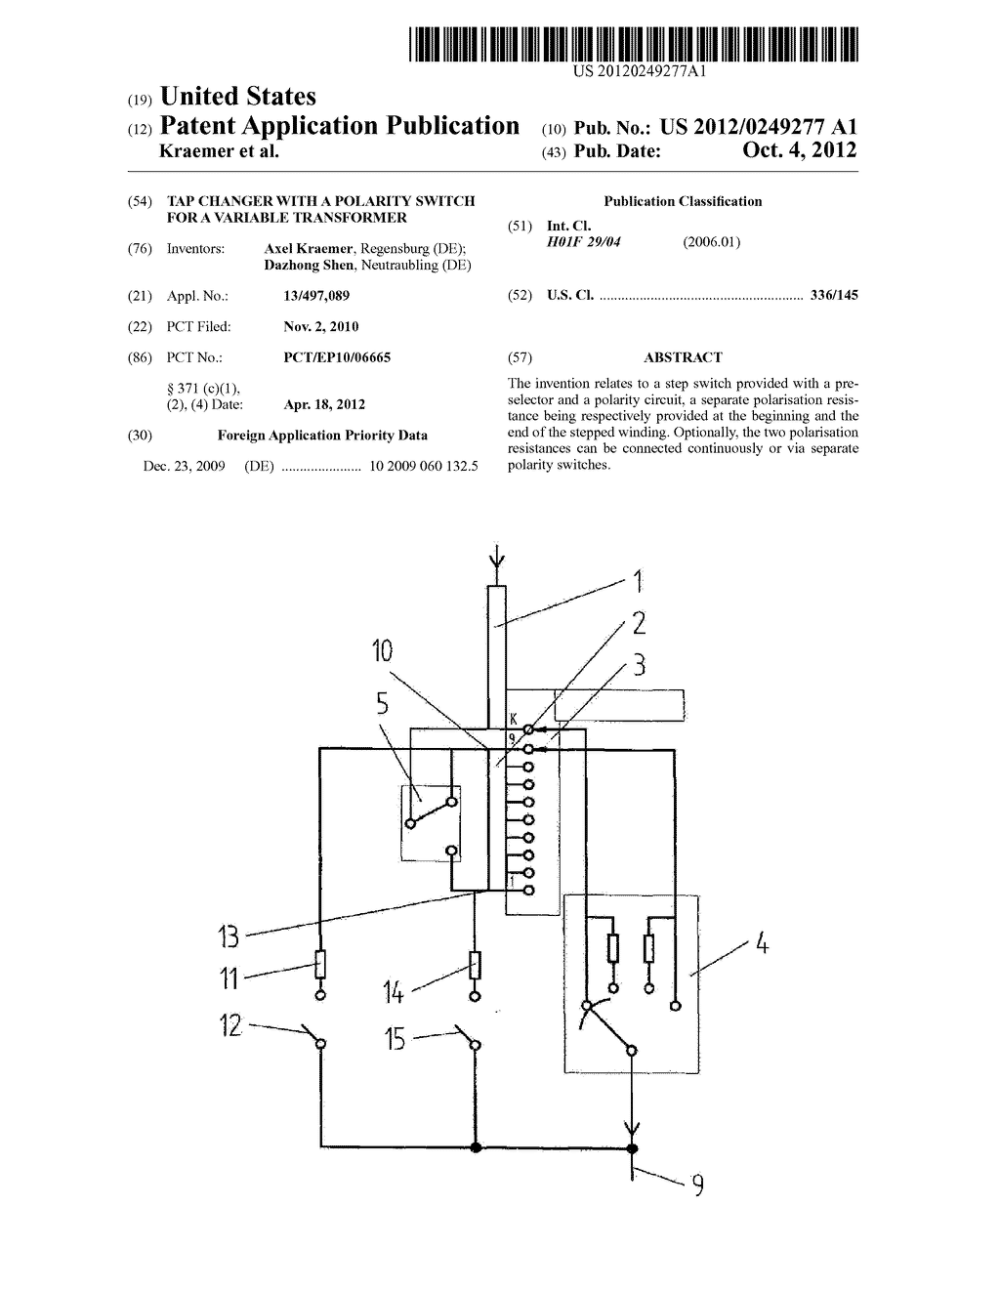 medium resolution of tap changer with a polarity switch for a variable transformer diagram schematic and image 01